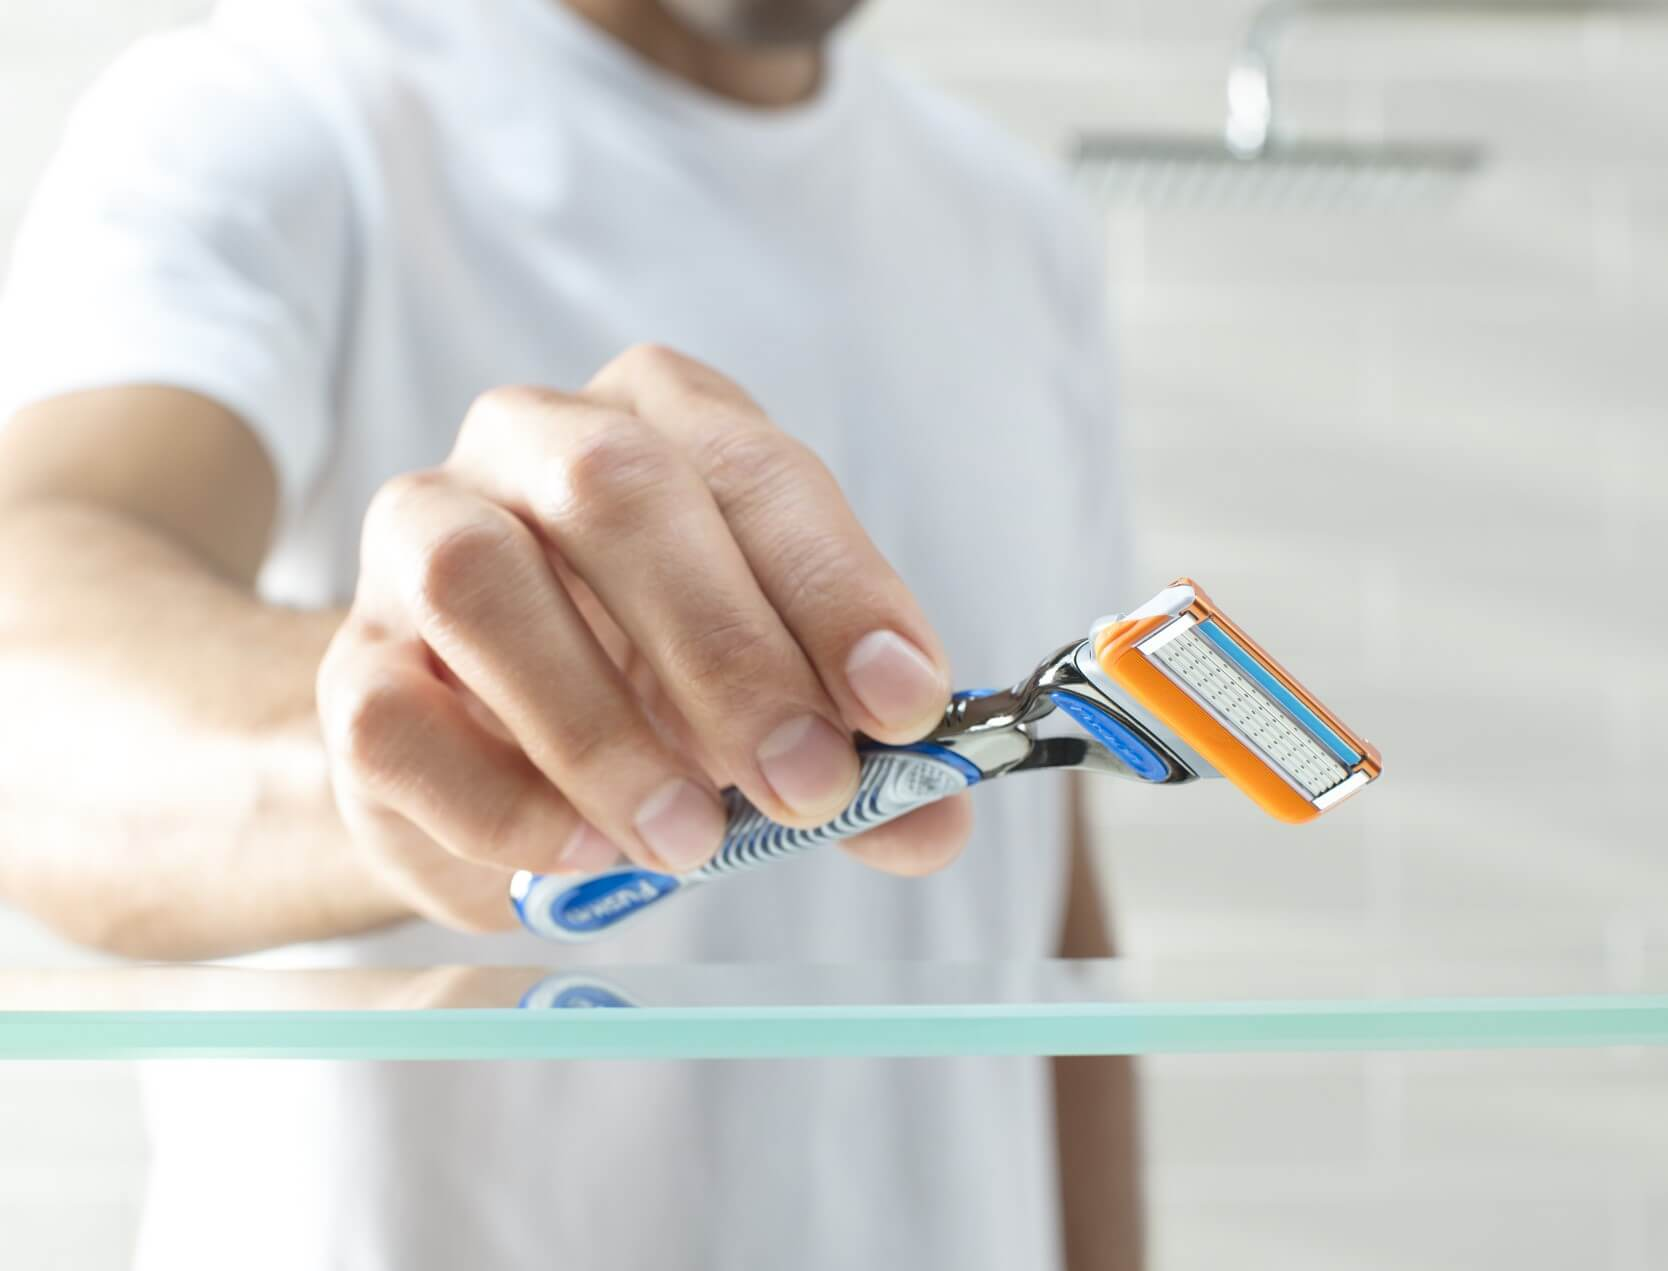 Explore our range of razors and blades with free next day delivery over £15